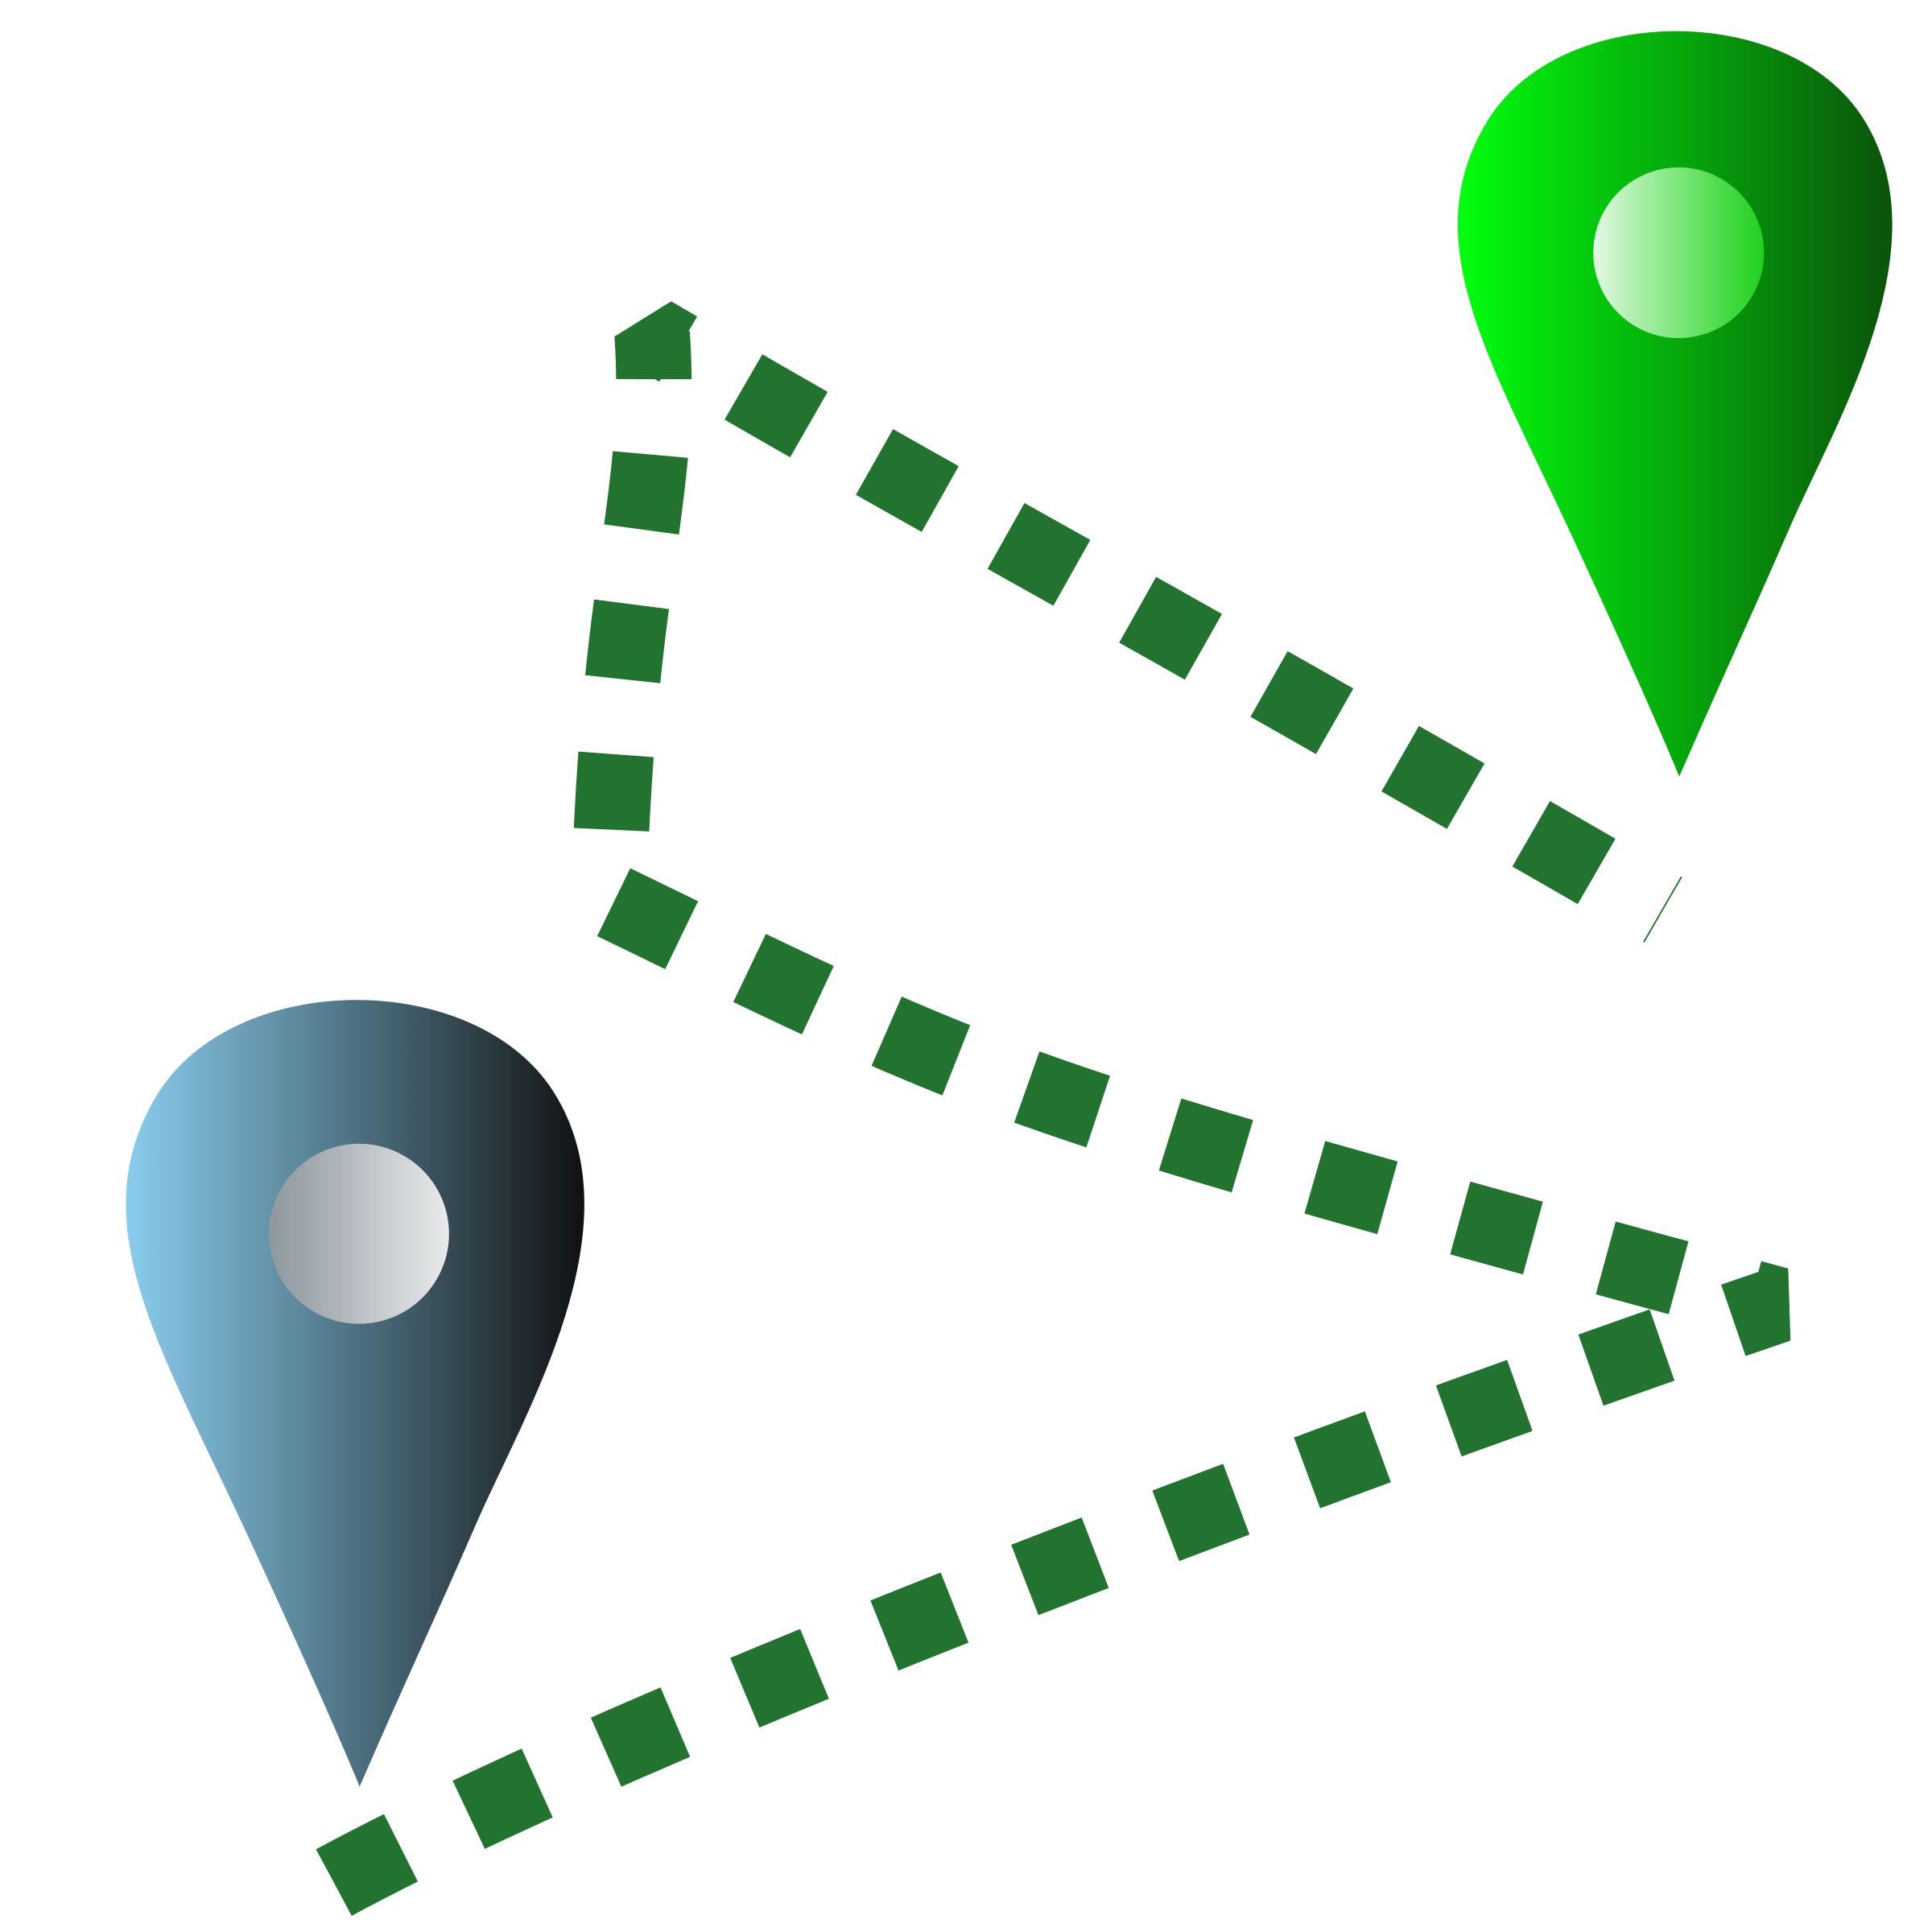 New location cliparts shop. Track clipart svg